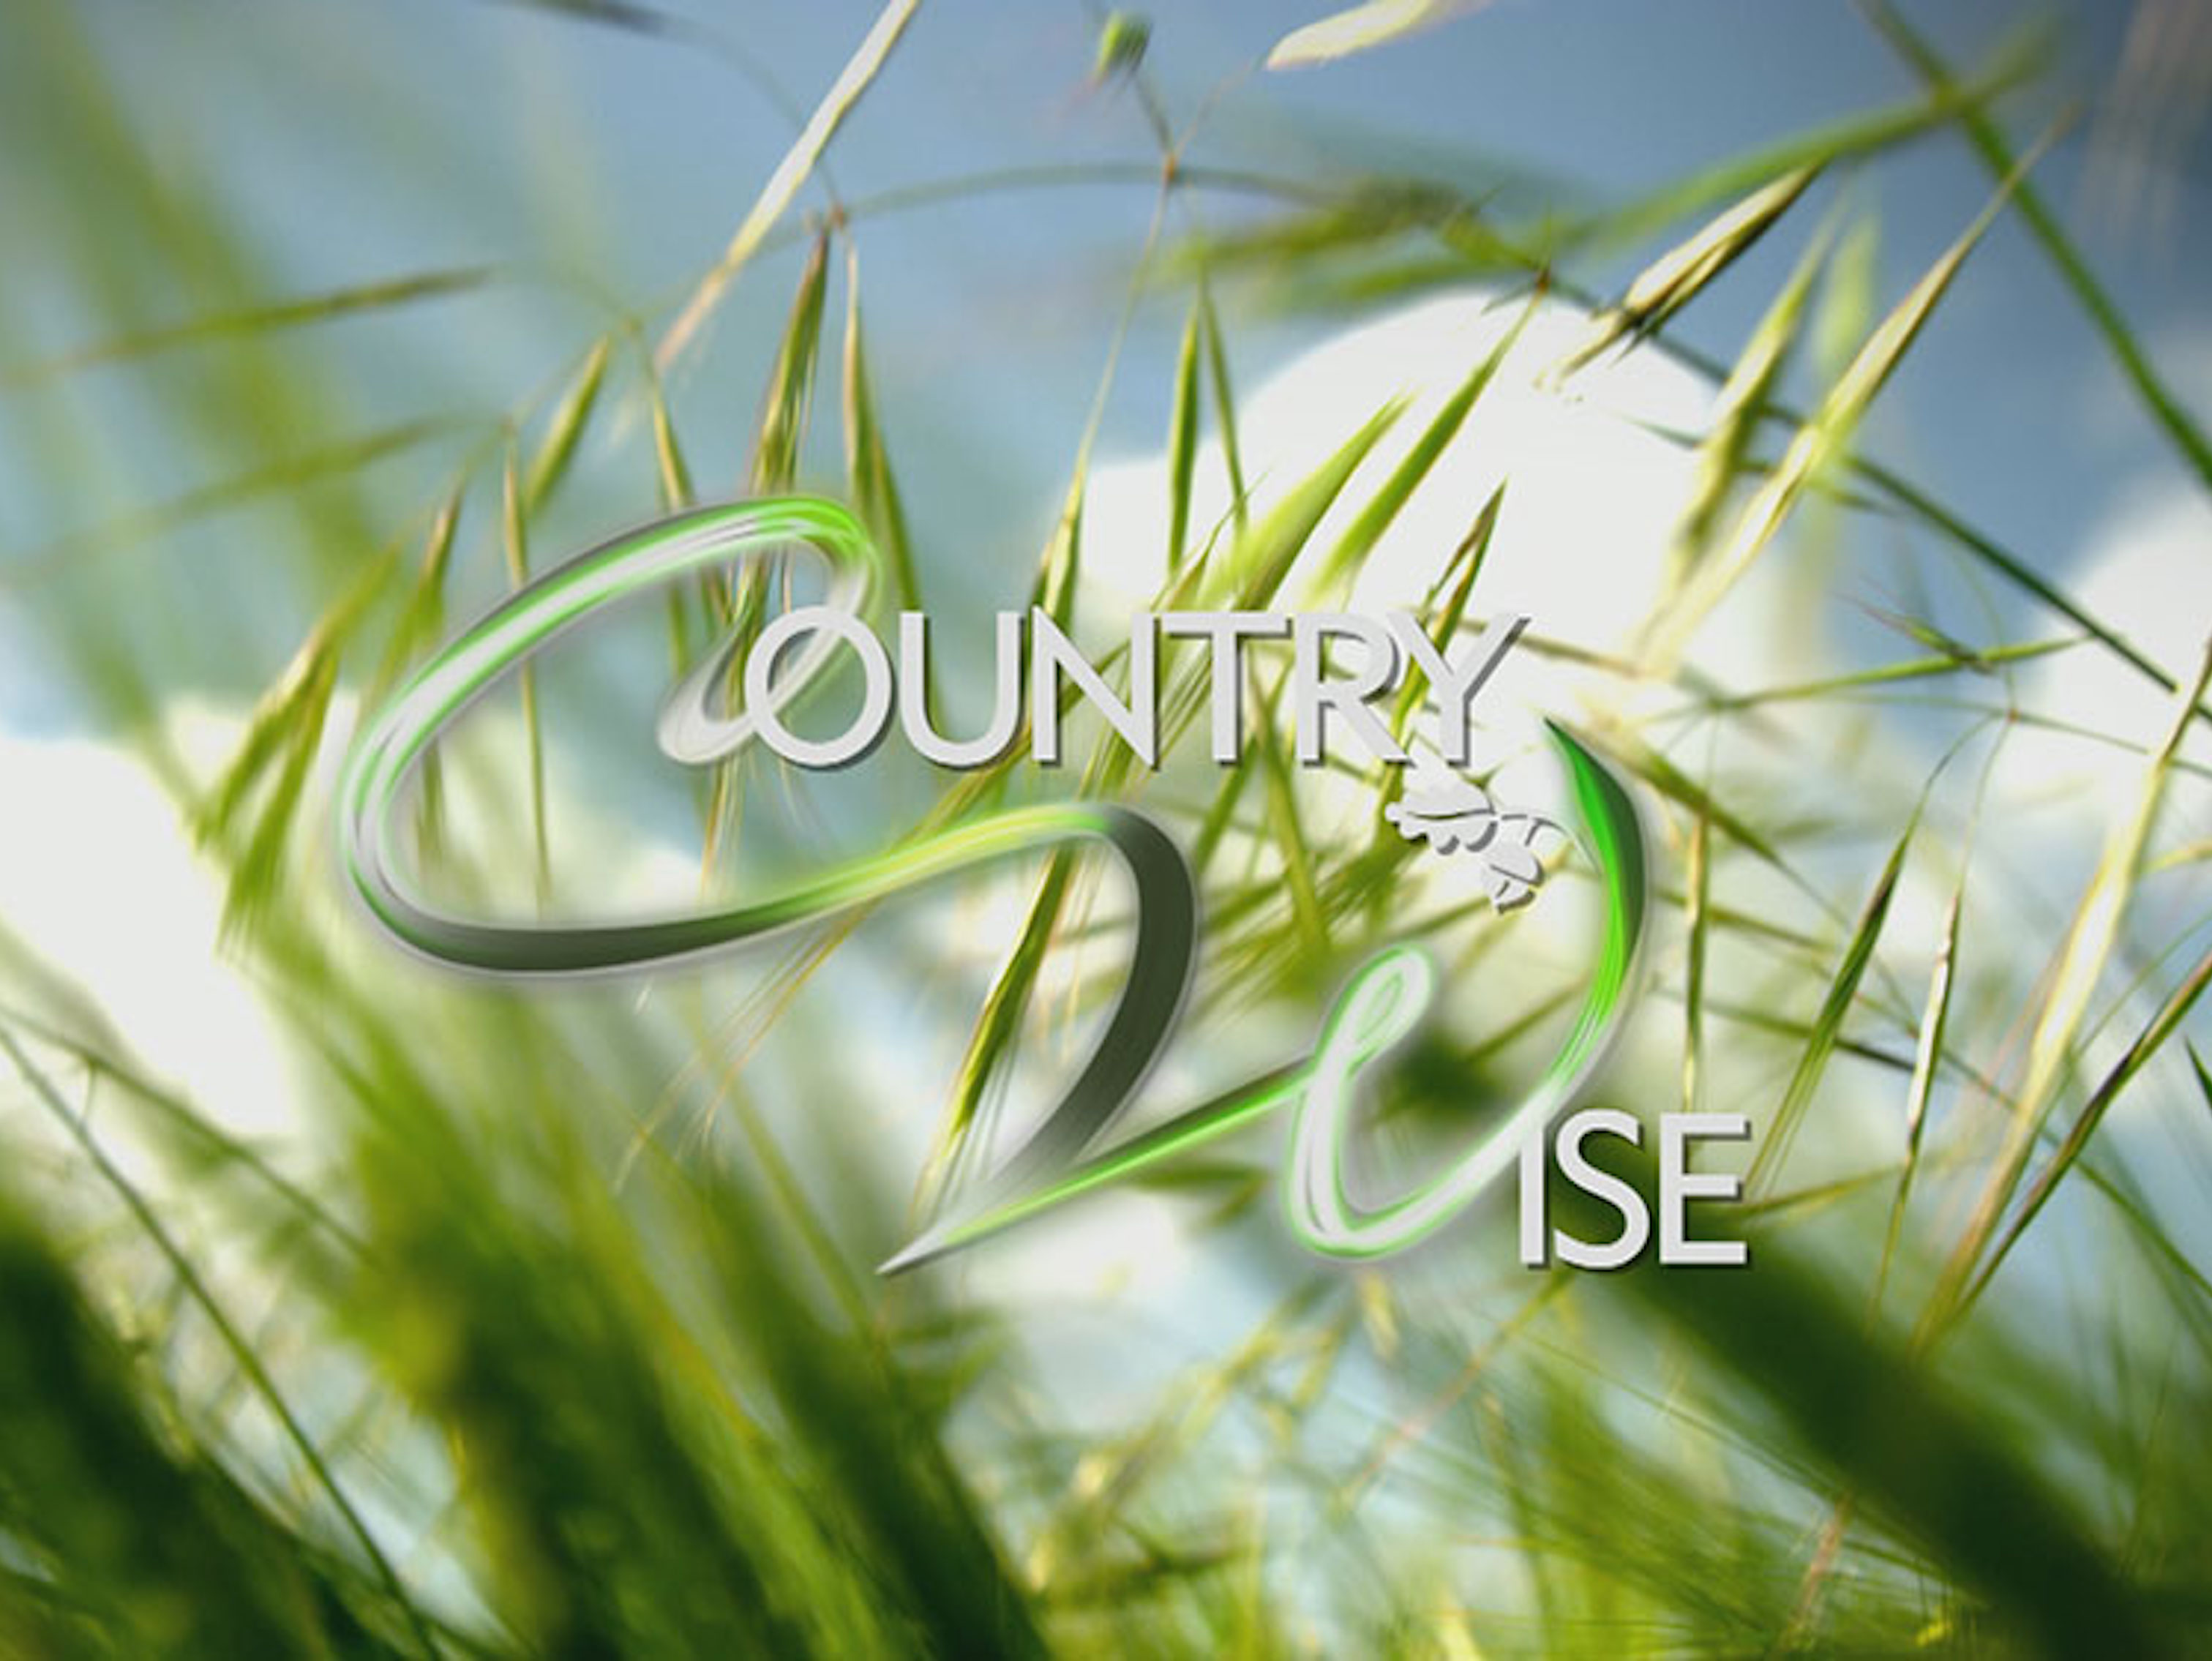 Country Wise